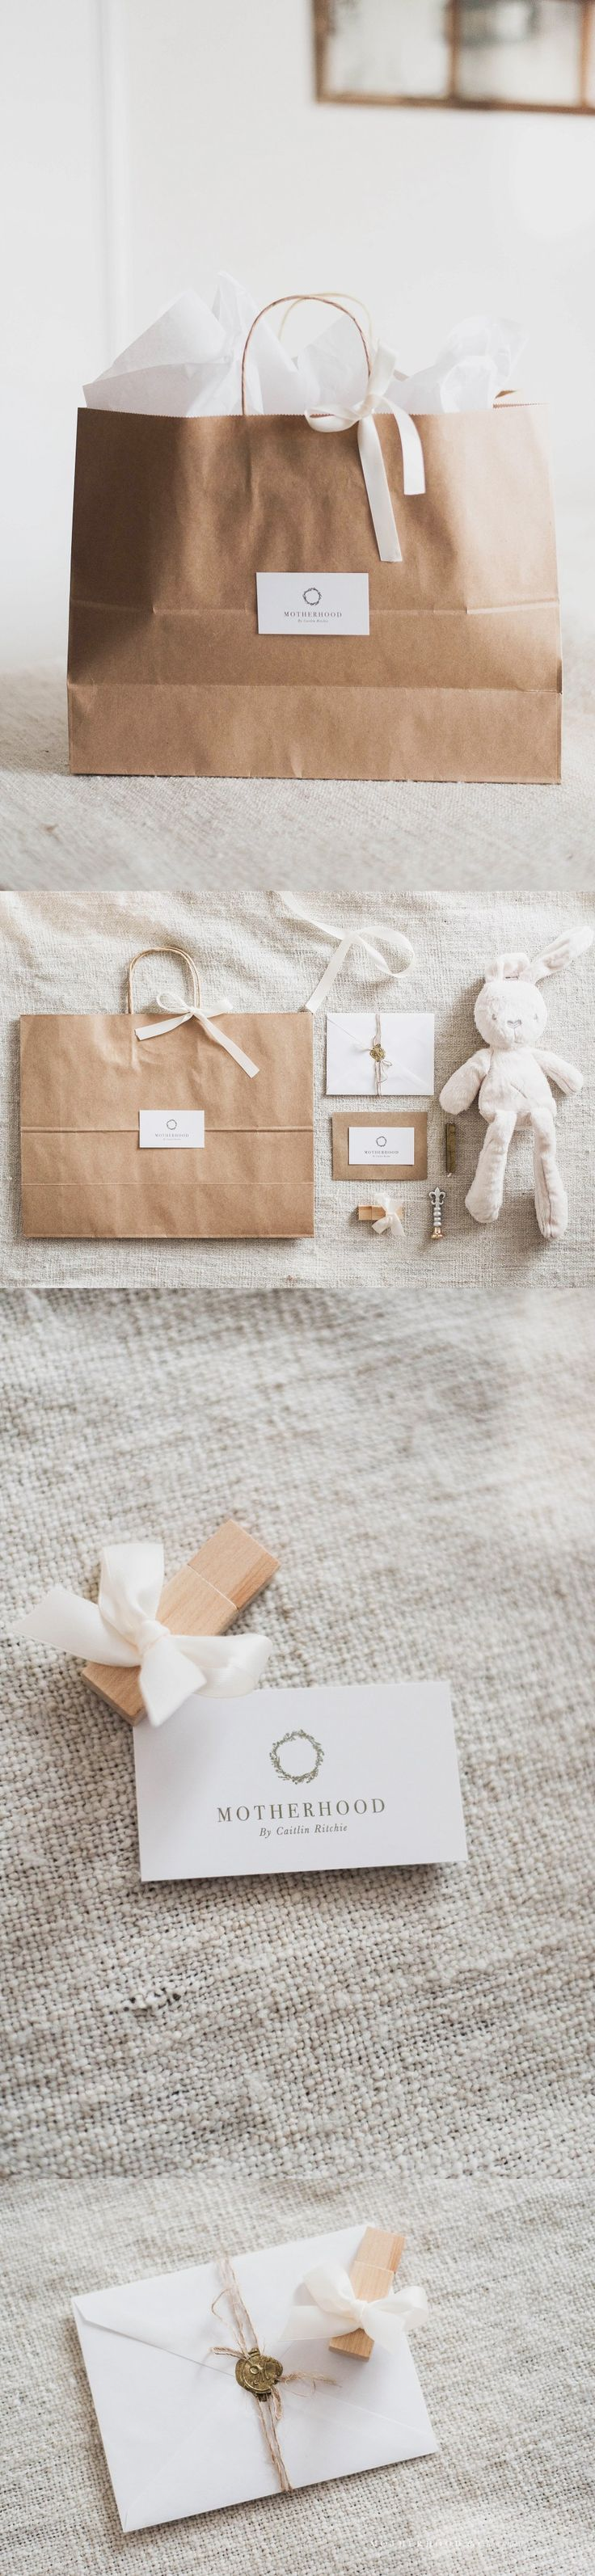 Client Gifts and Packaging by Motherhood - By Caitlin Ritchie | Beautiful luxury client photography packaging with an minimalist, organic feel. Maternity, Newborn, Baby & Child, Family Photographer. Petawawa - Perth - Ottawa Photography